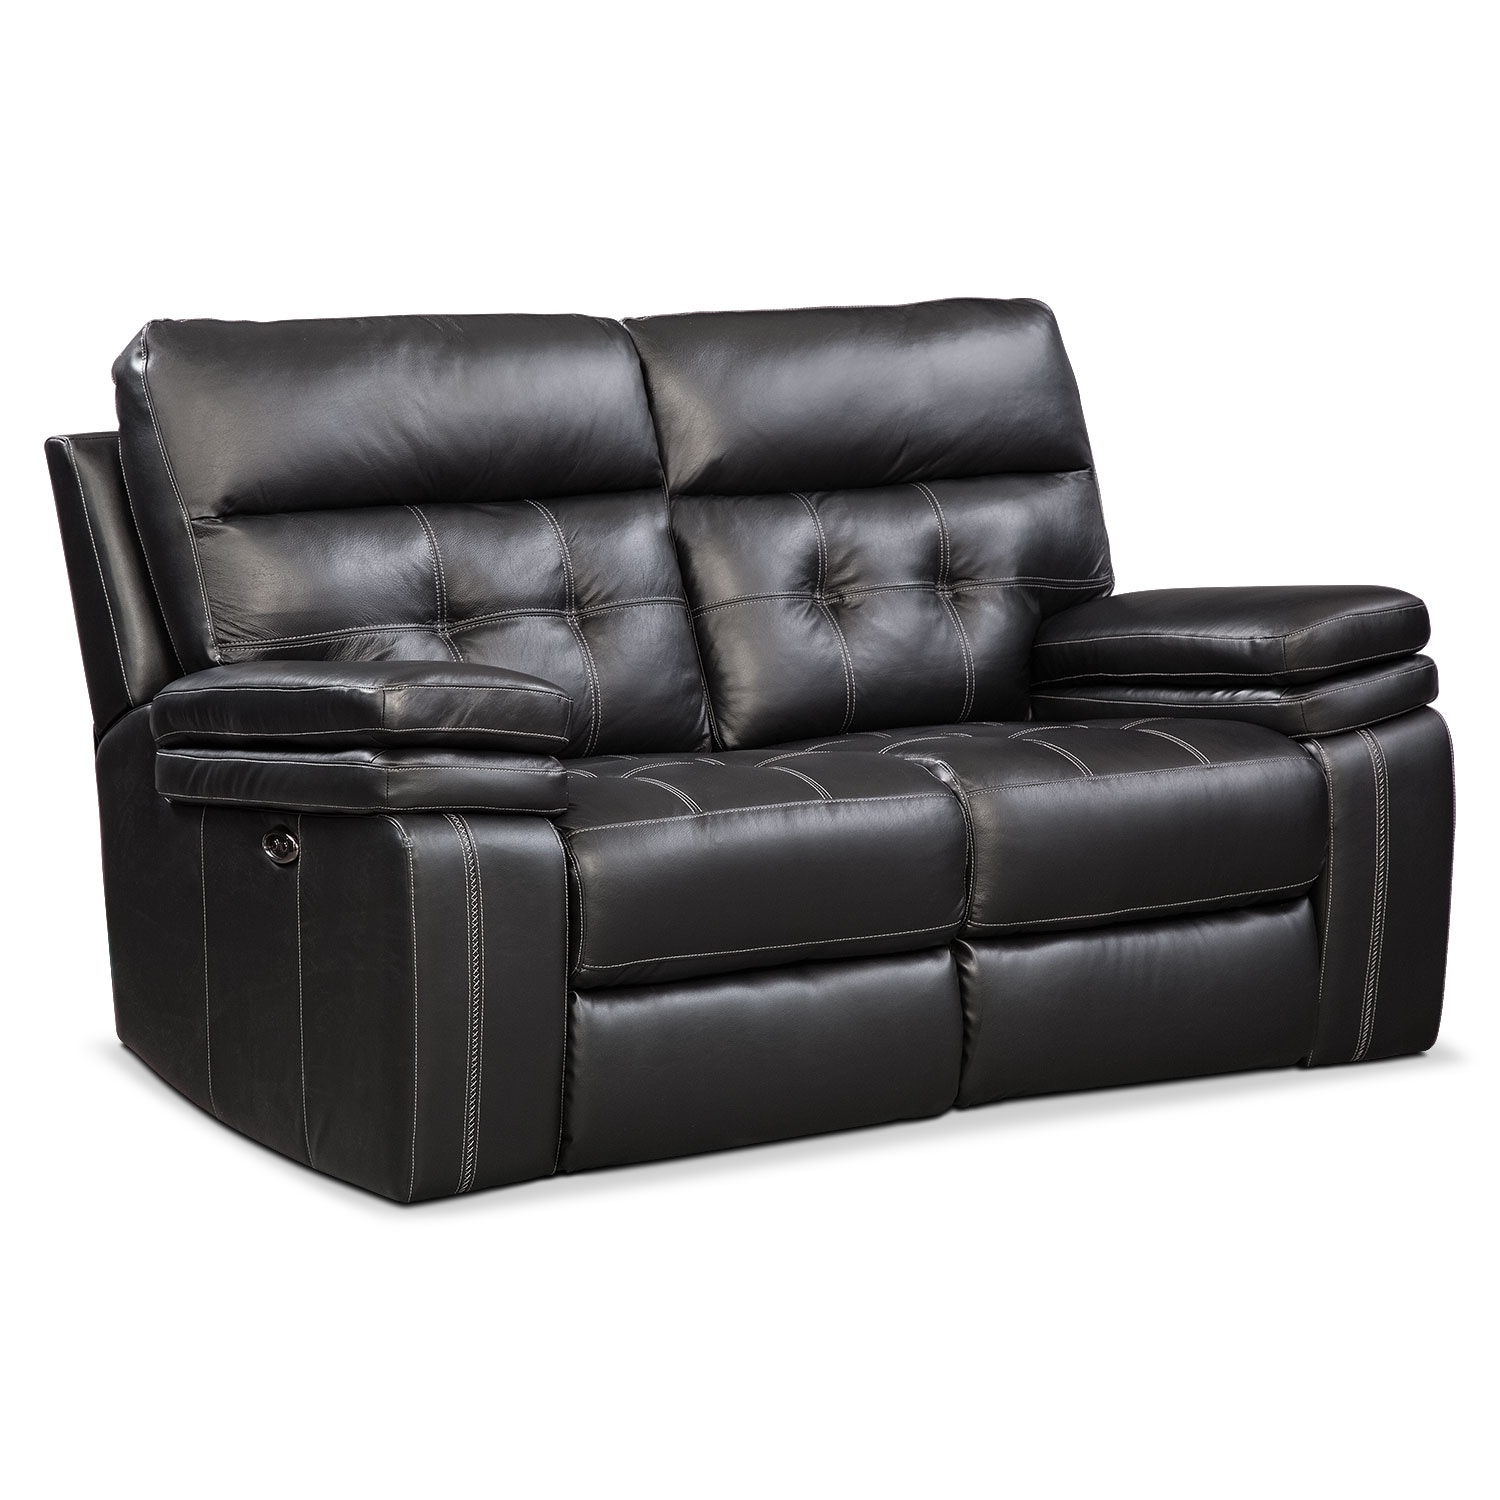 Brisco Power Reclining Loveseat - Black | Value City Furniture and